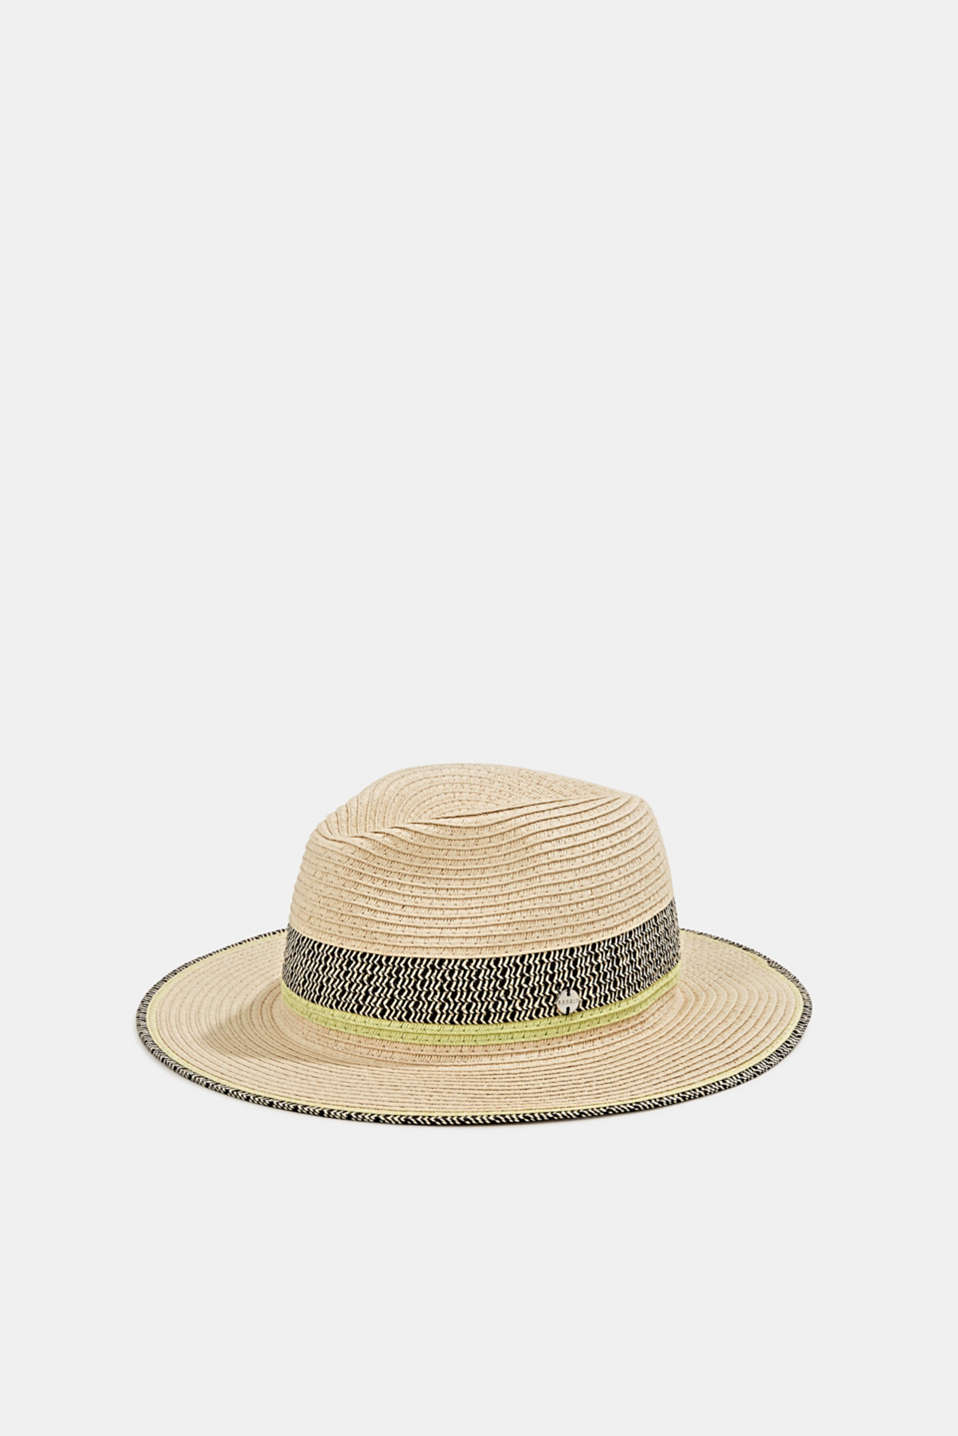 Esprit - Panama hat made of bast